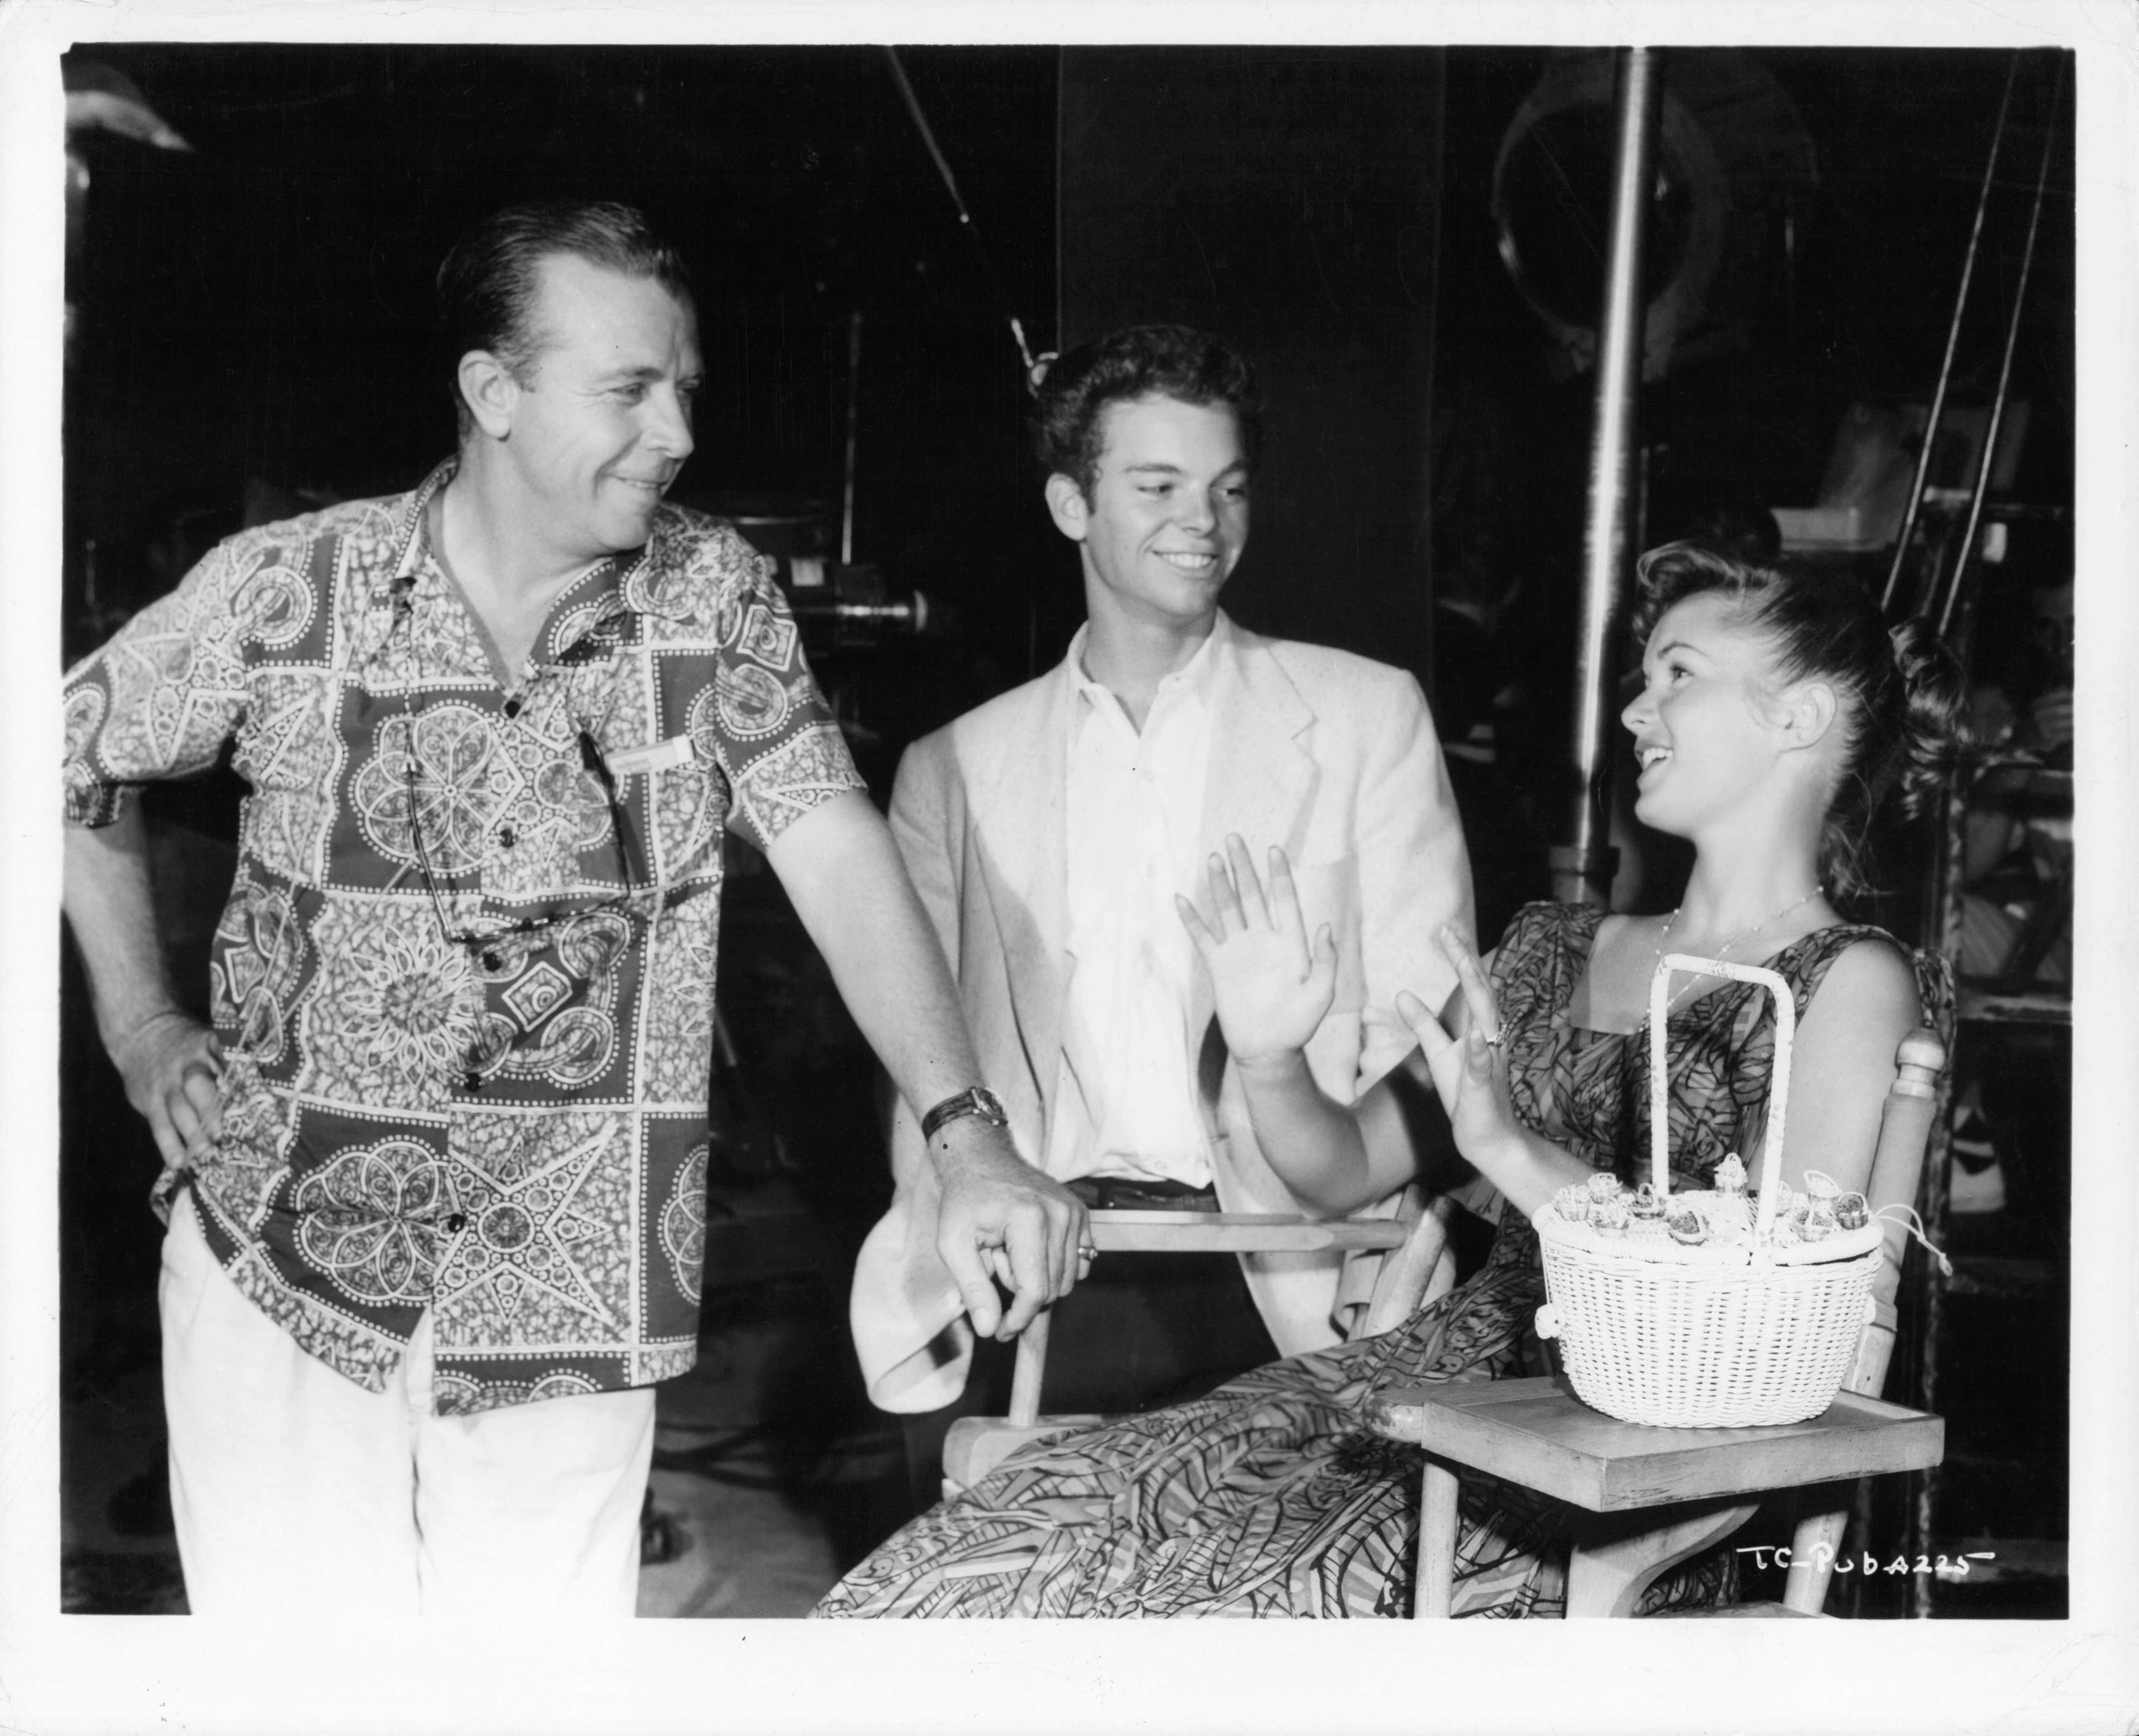 """Dick Powell talks with Russ Tamblyn and Debbie Reynolds during a break from shooting the film """"The Enemy Below,"""" 1957."""